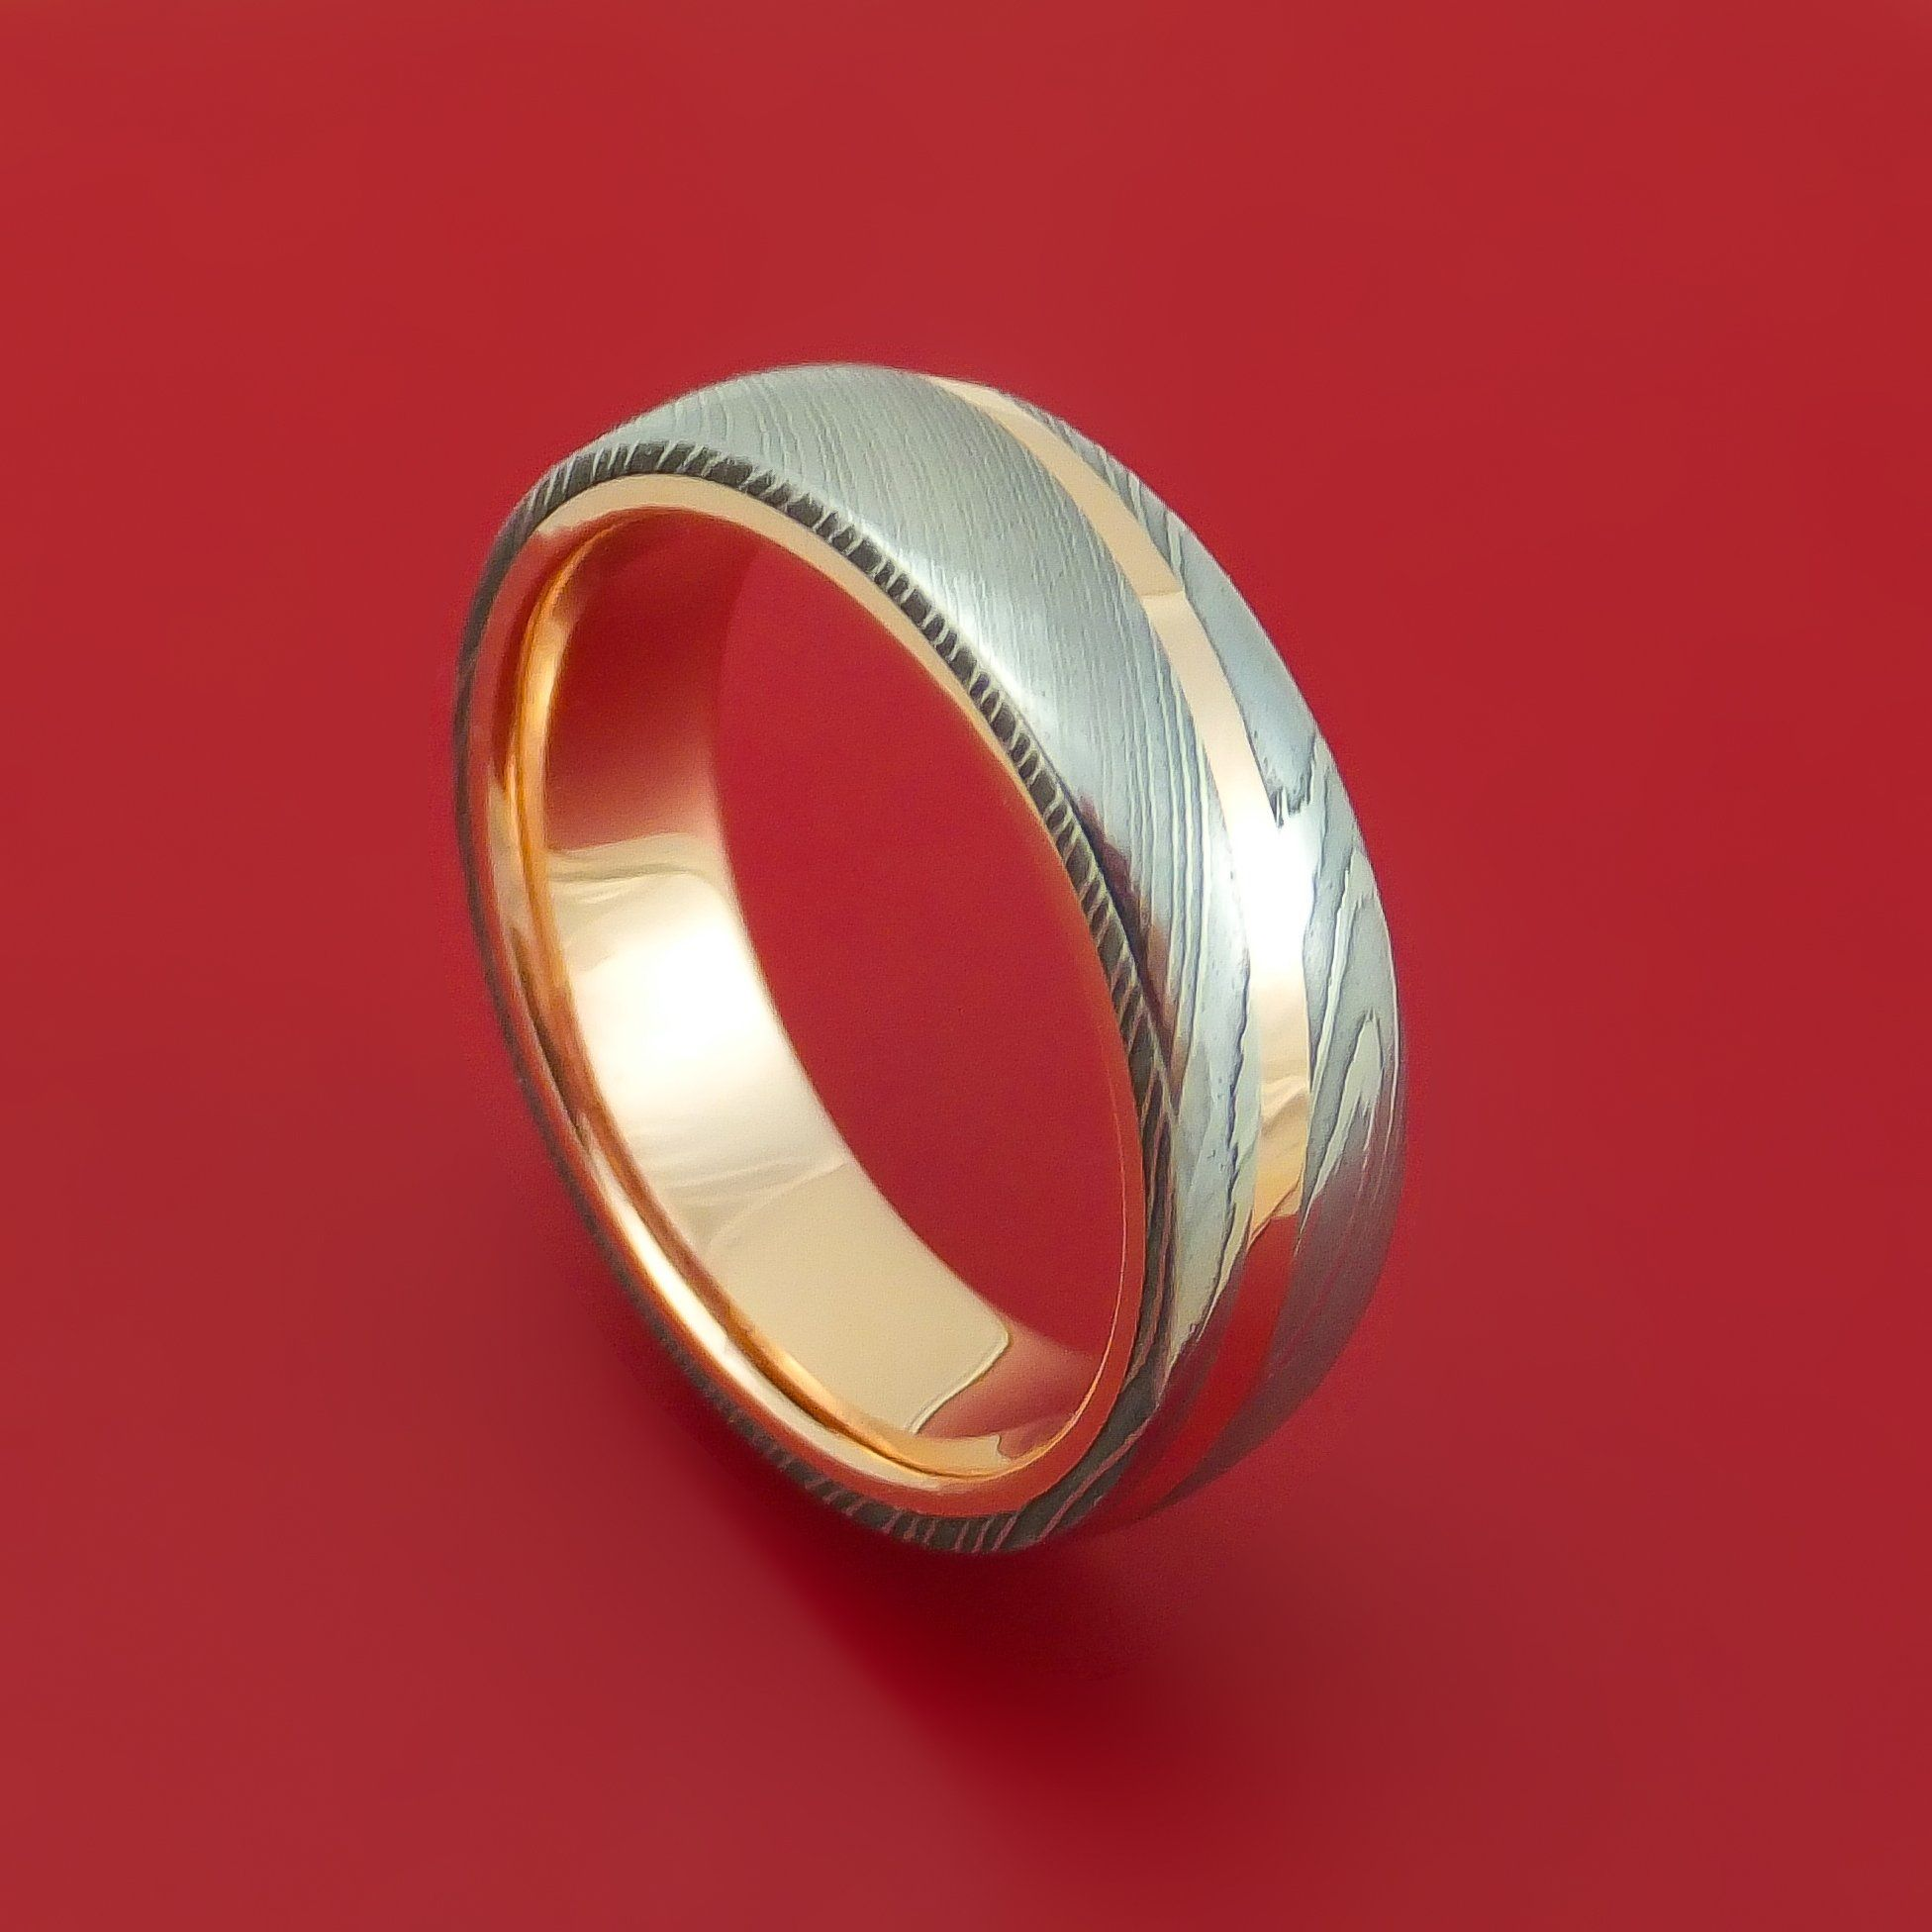 Damascus steel ring with 14k rose gold inlay and interior